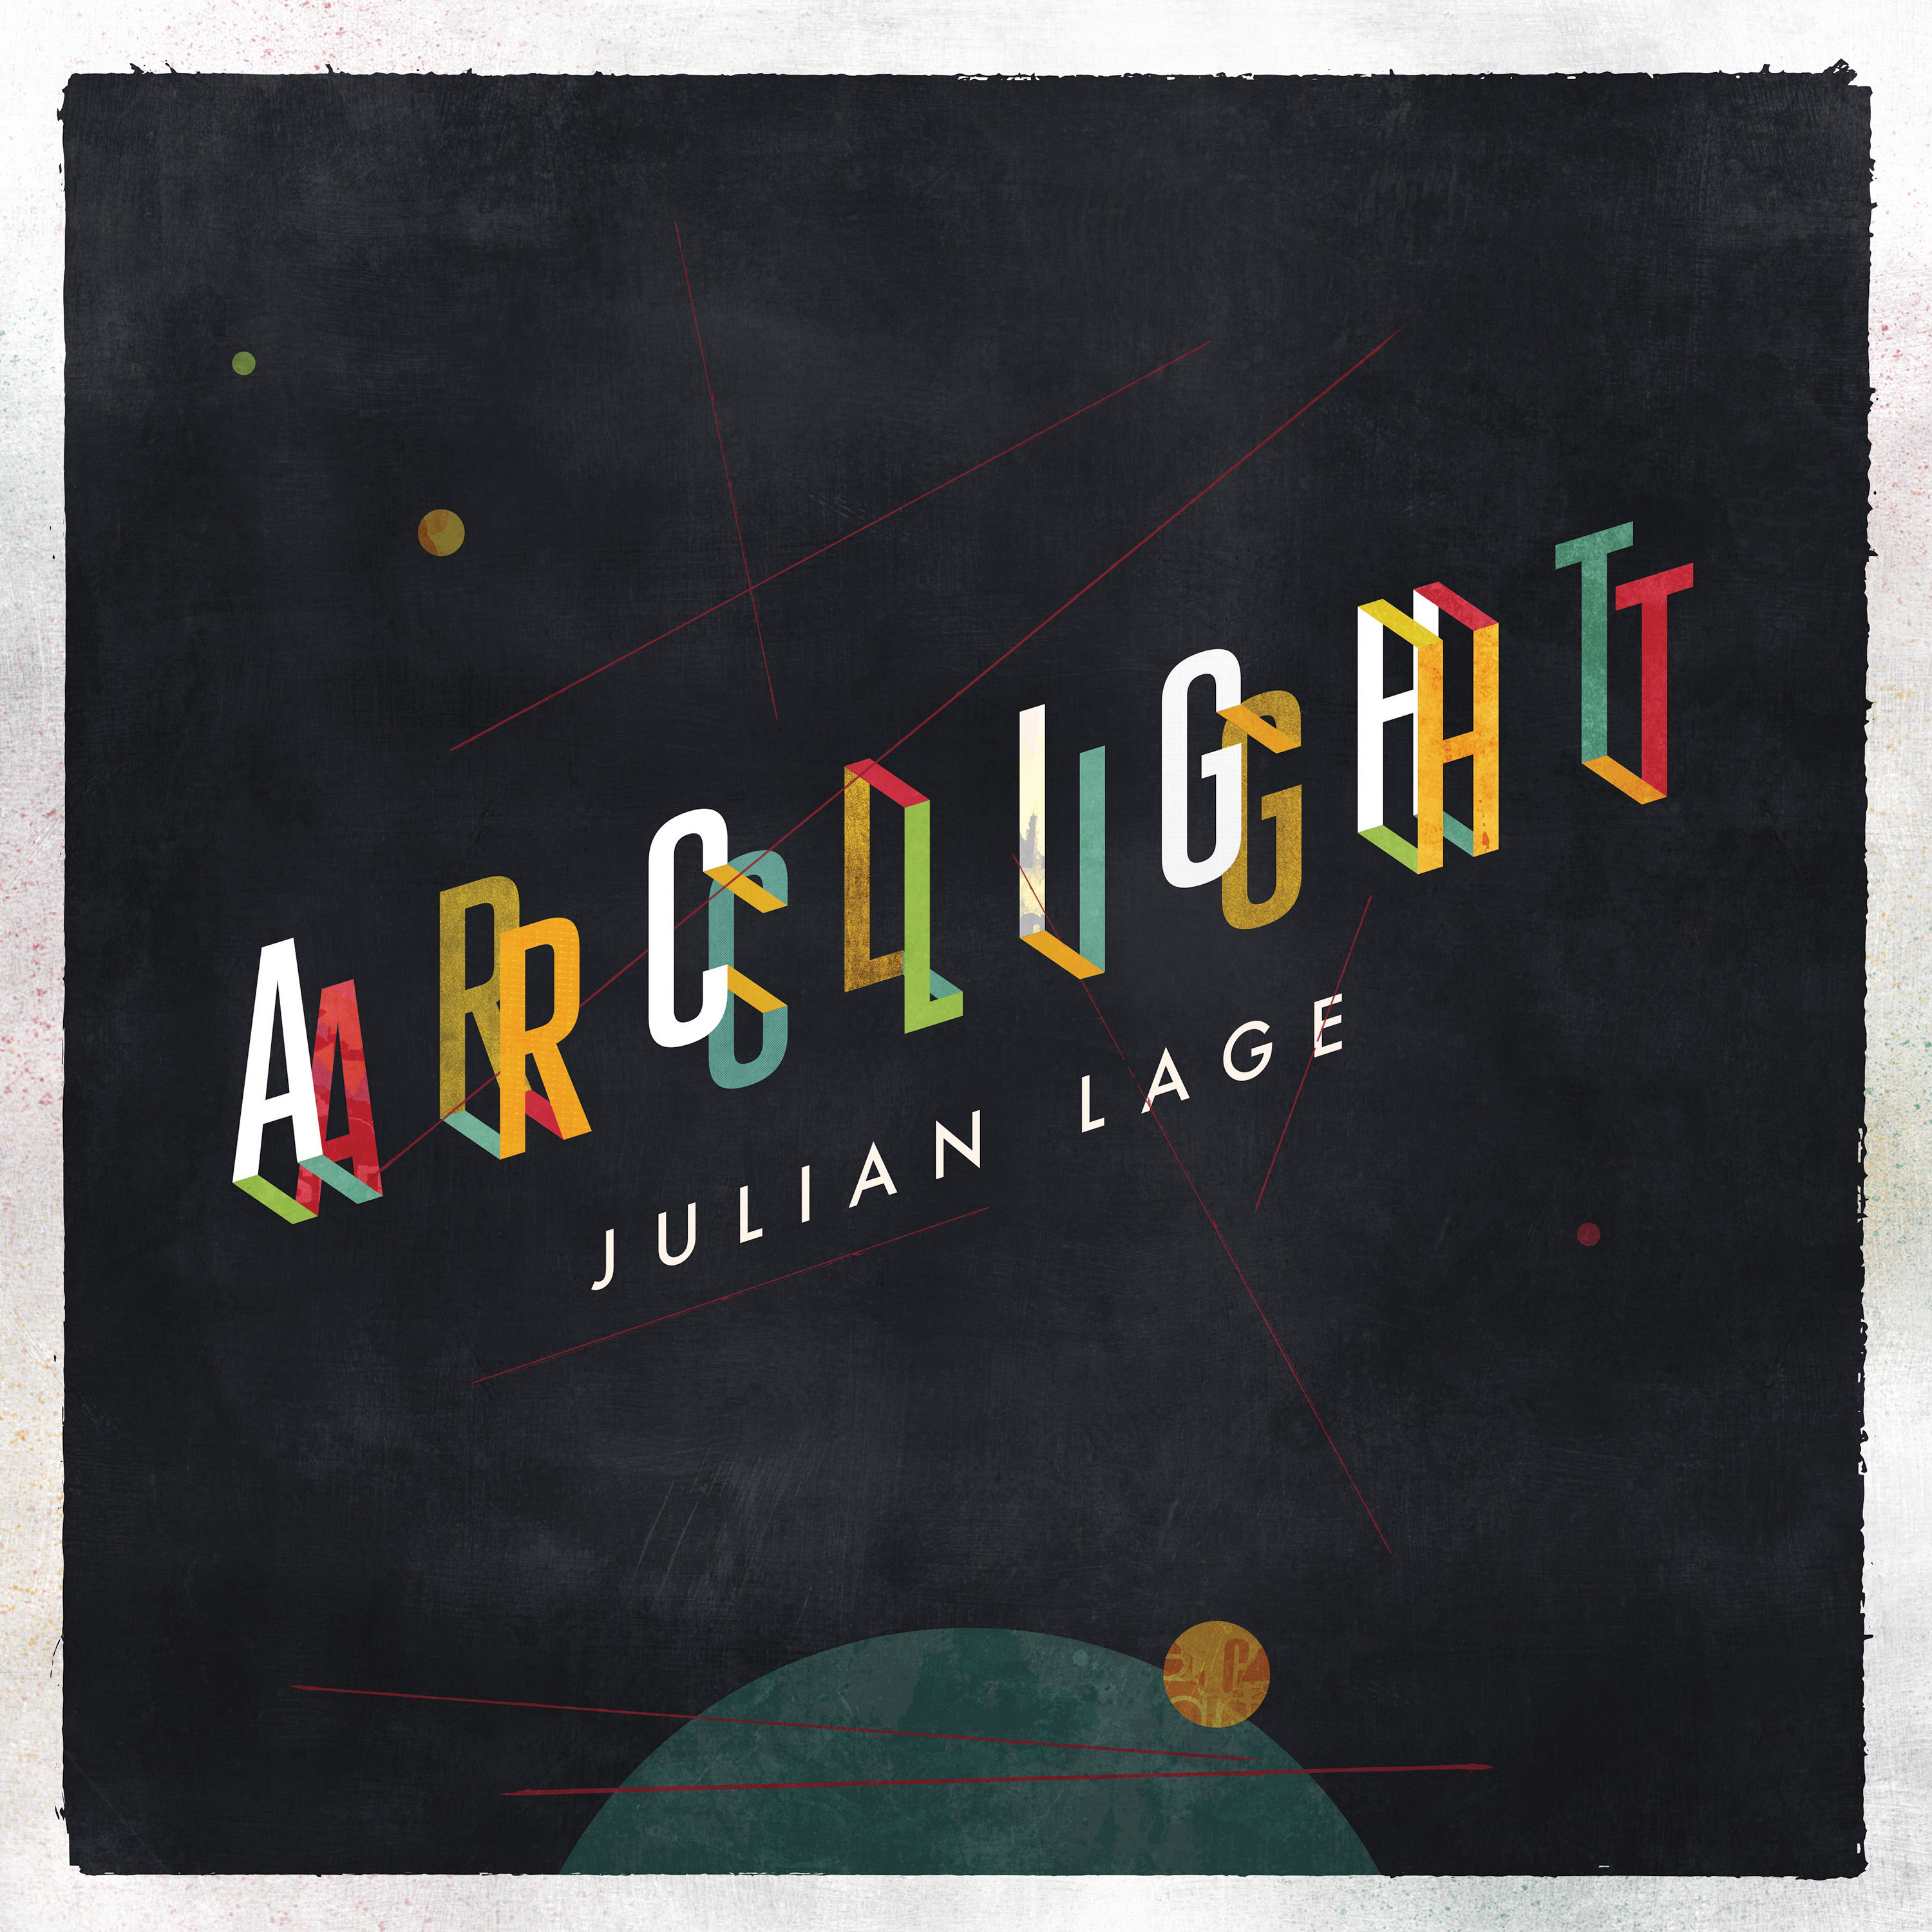 Julian Lage - Arclight - Cover image